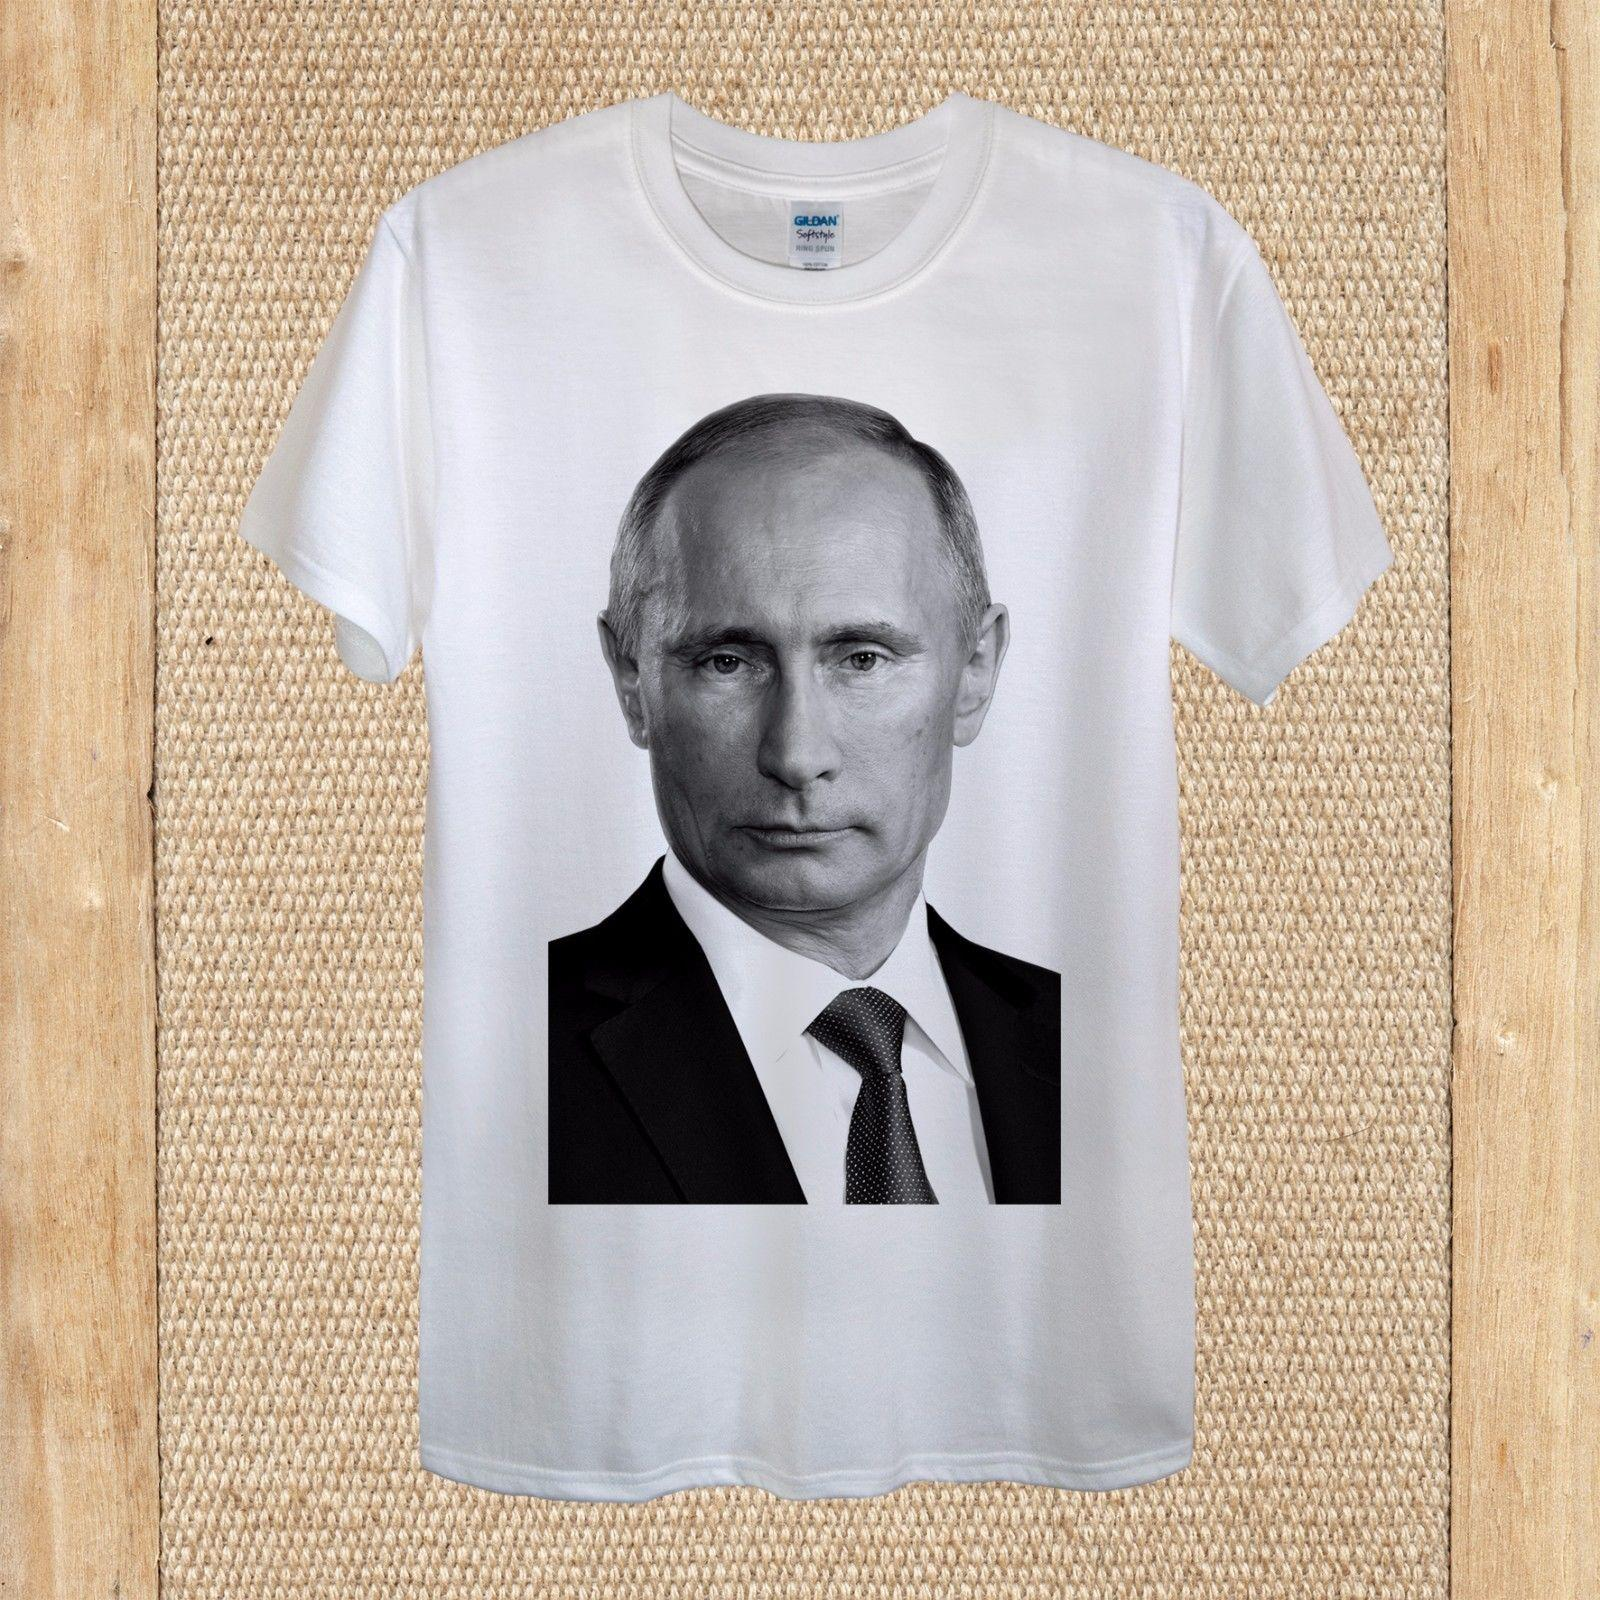 799b8a374bde Details Zu Vladimir Putin President Russia Moscow Leader Donald Trump  Unisex Women Fitted Funny Unisex Casual Tshirt Top Novelty T Shirt Funny  Printed T ...